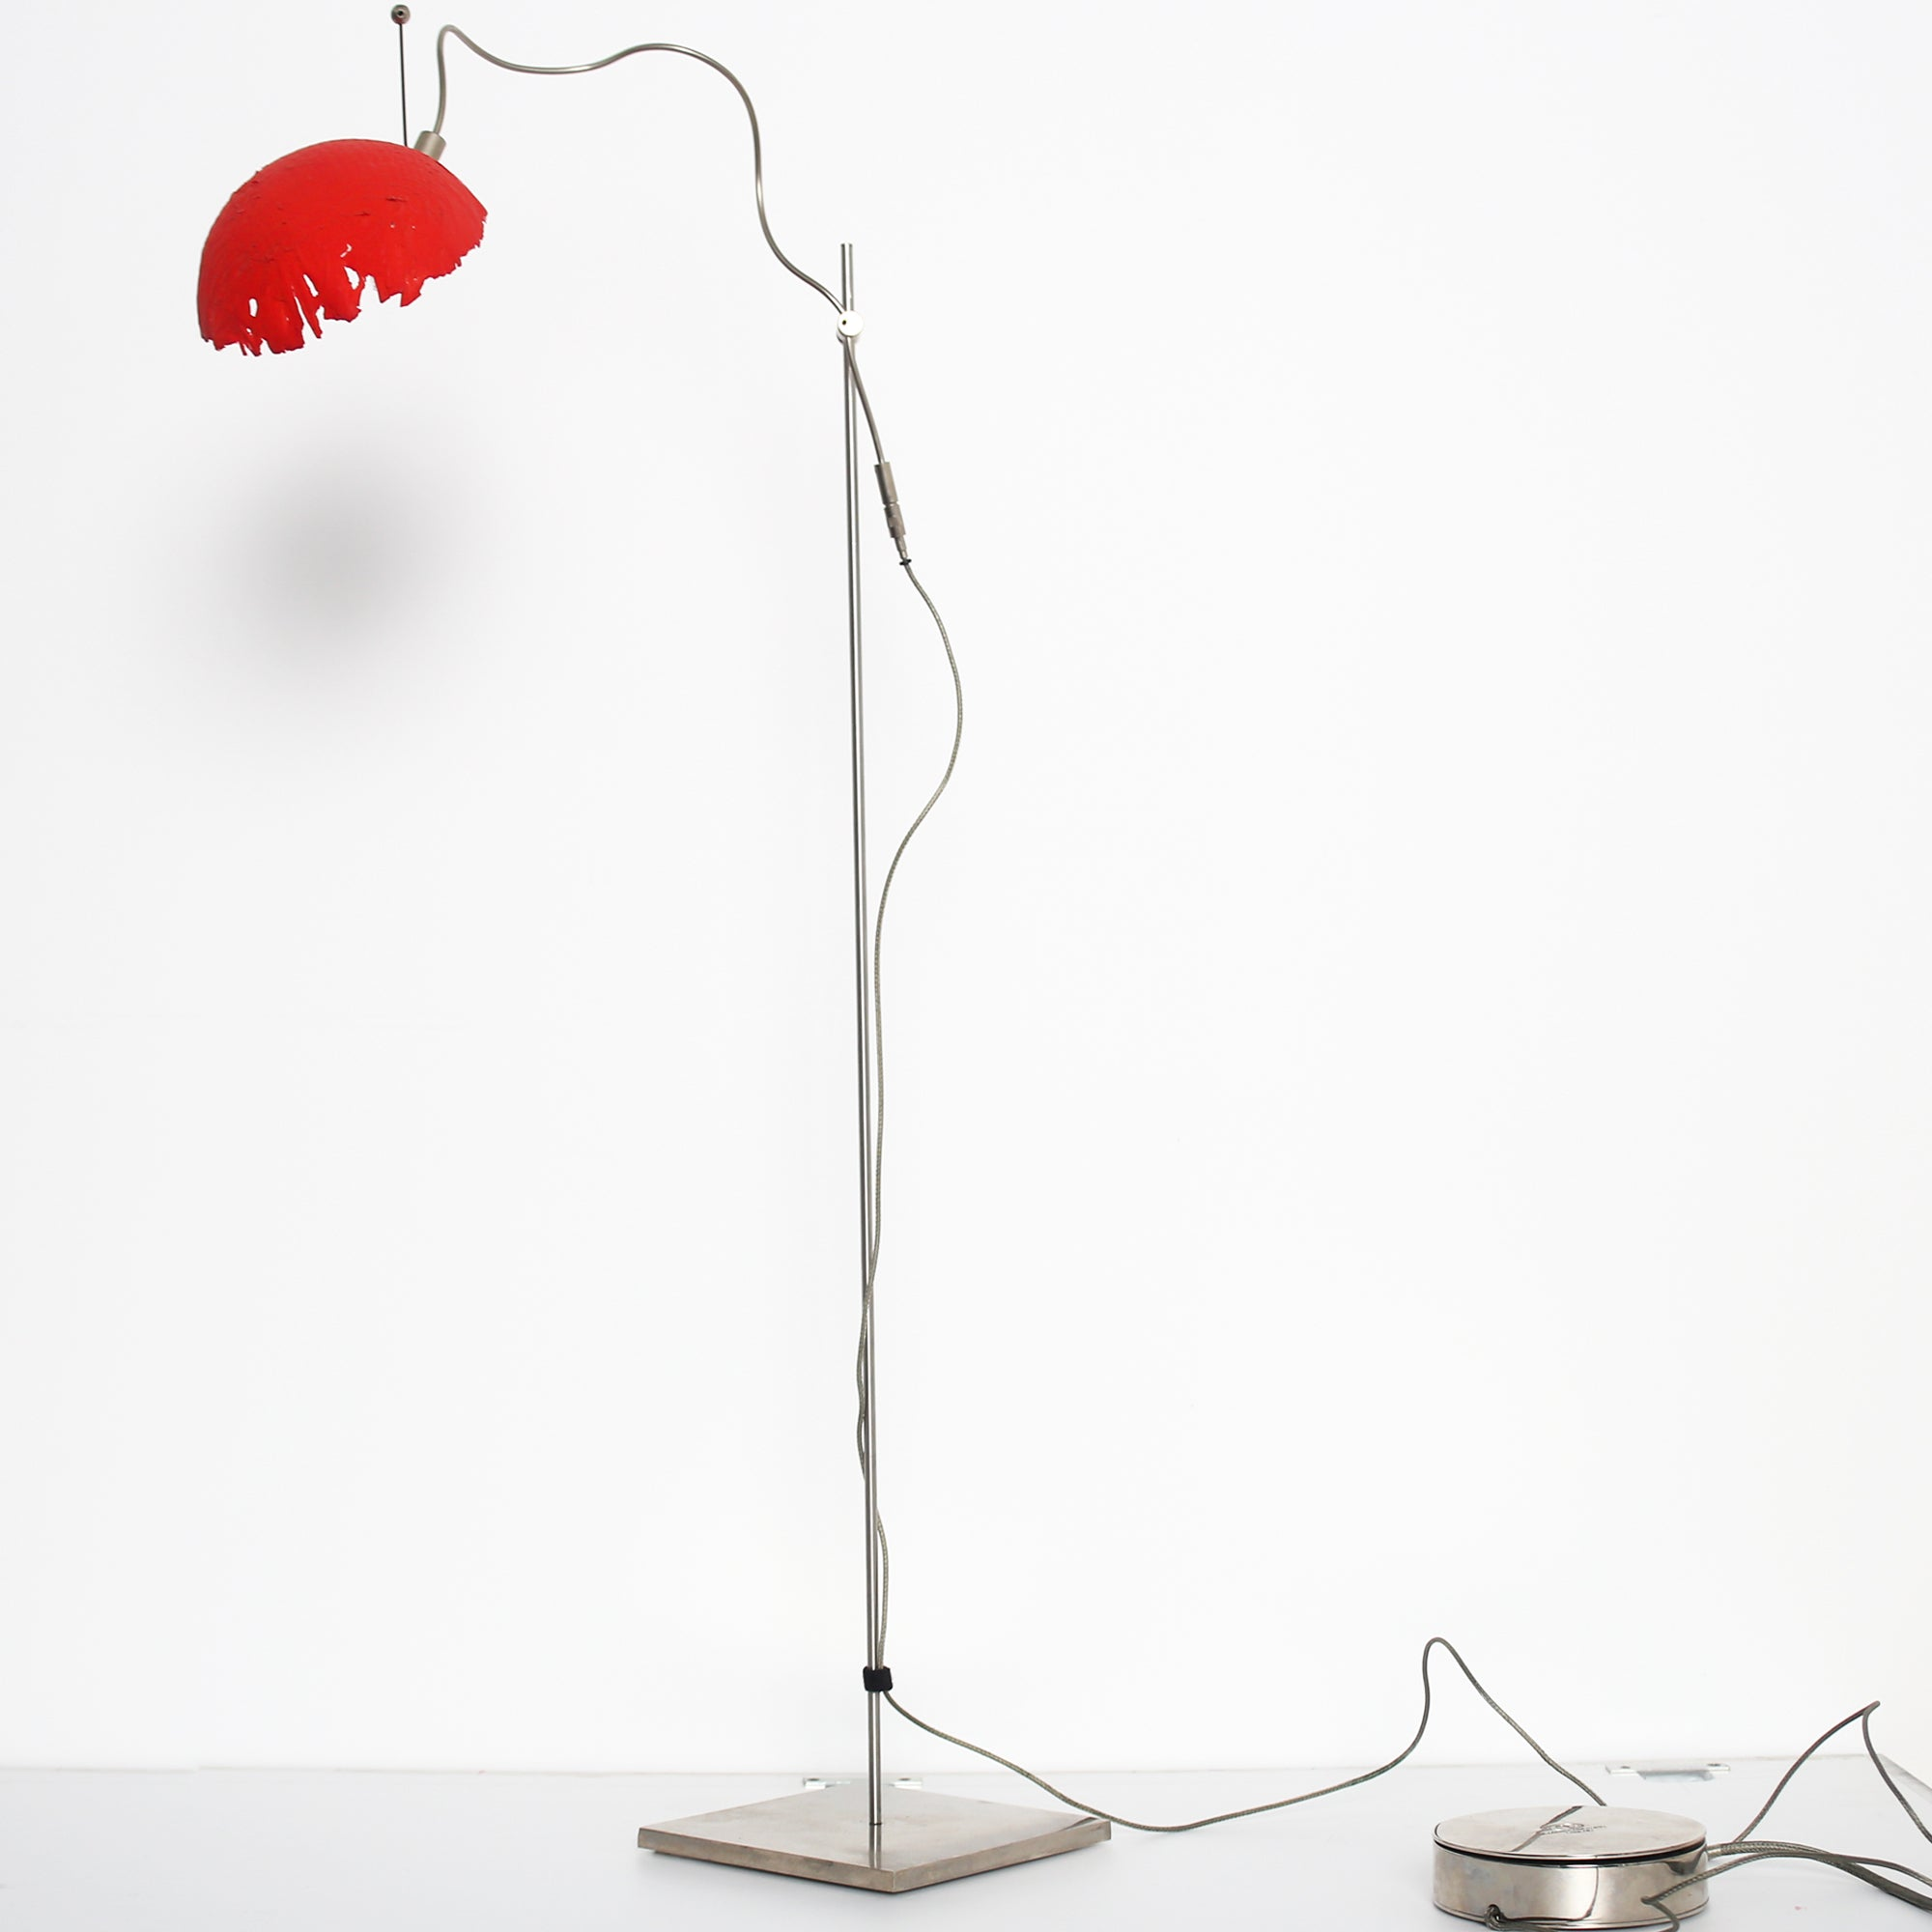 Smith & Catellani Table Lamp